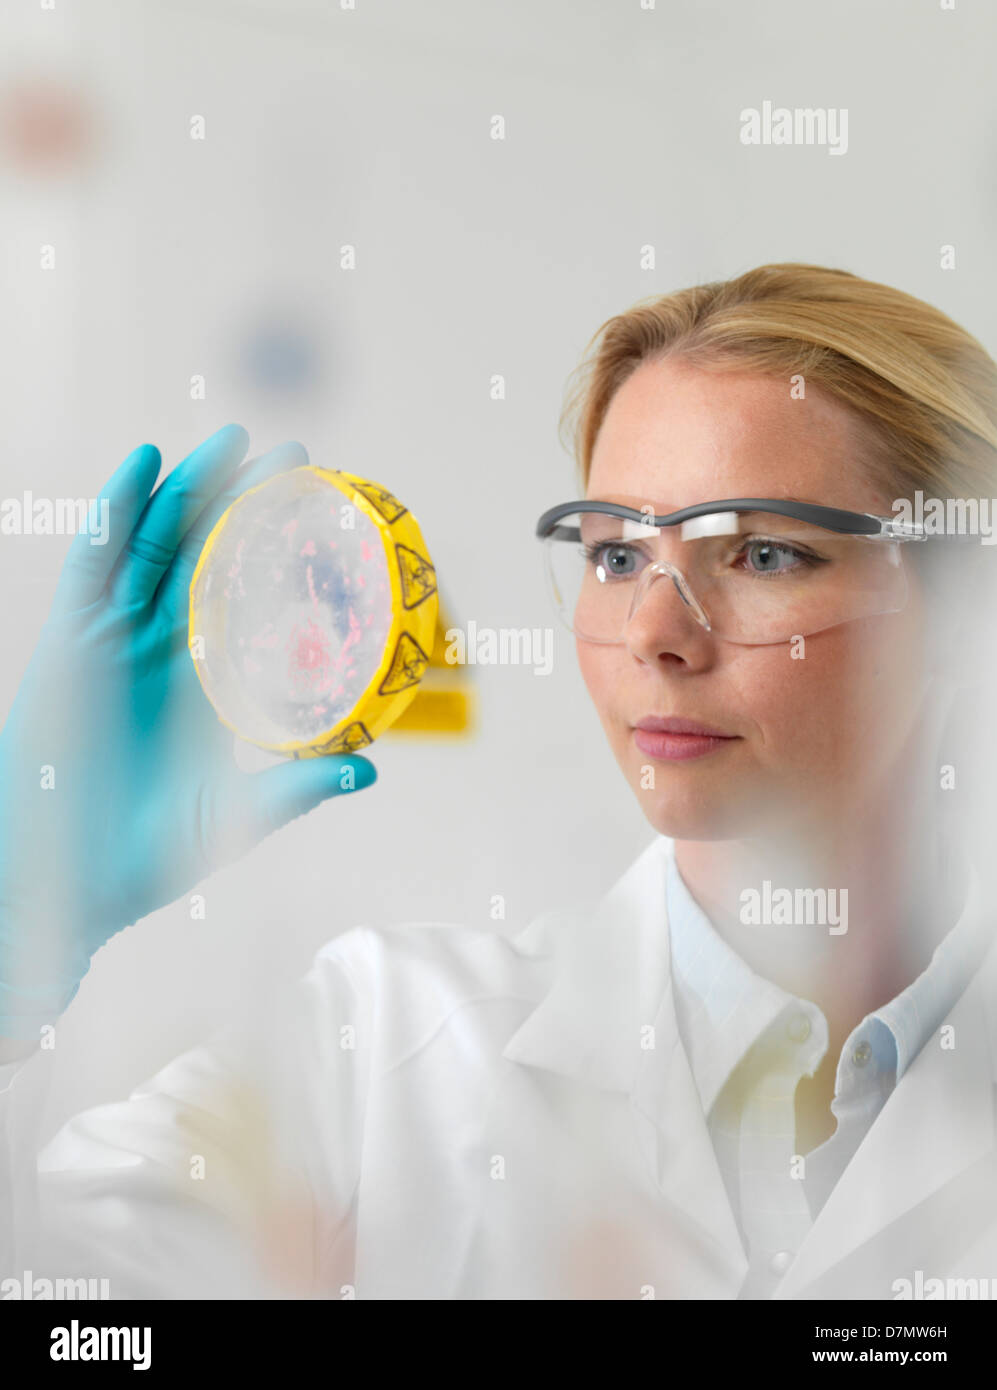 Microbiology research - Stock Image